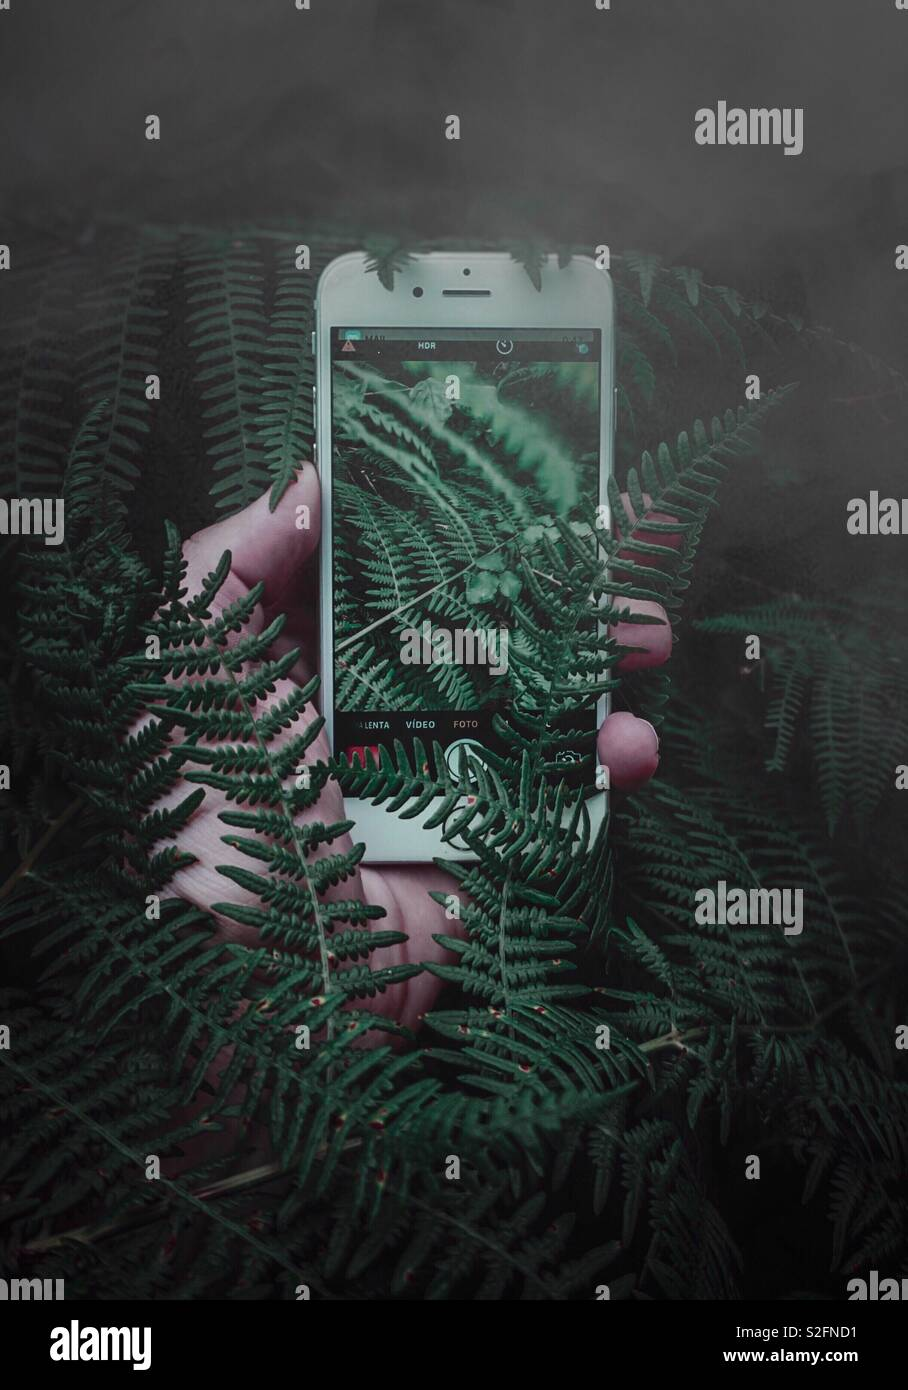 hand with phone in the ferns - Stock Image